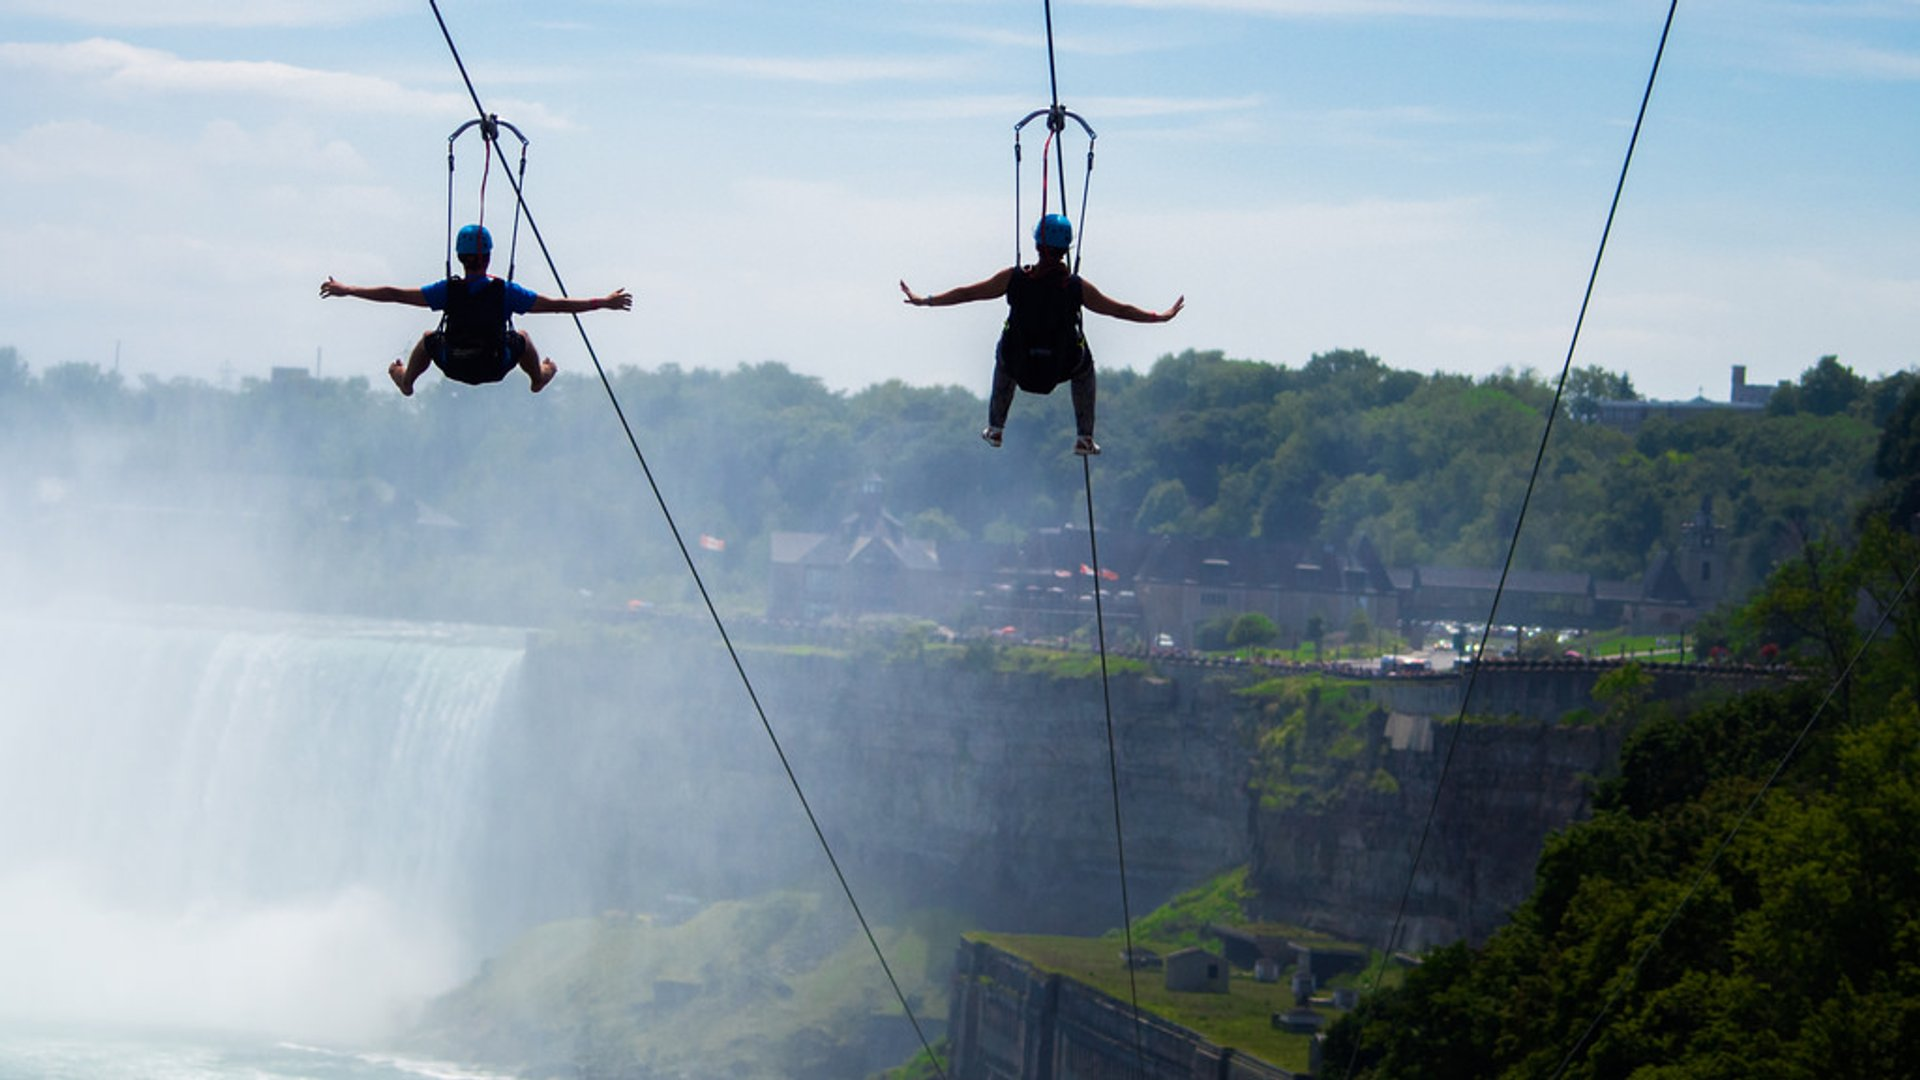 MistRider Zipline in Niagara Falls 2019 - Best Time